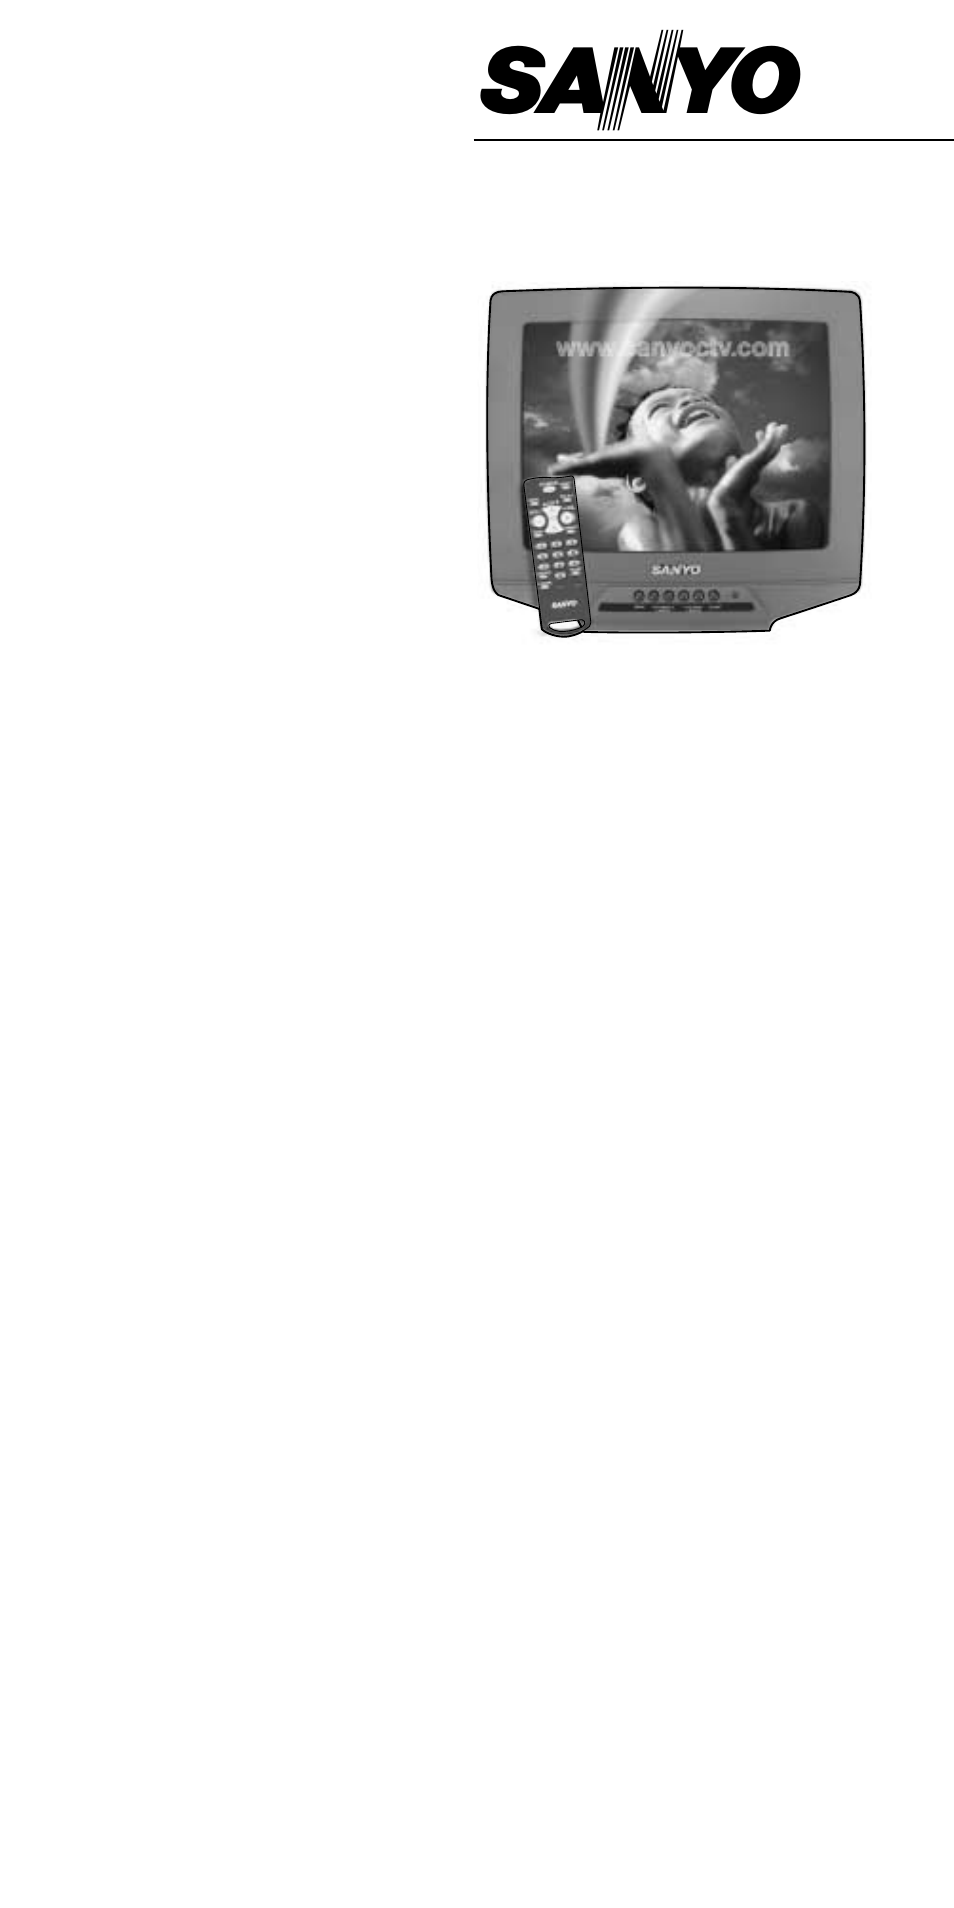 sanyo ds13390 user manual 44 pages also for ds19390 ds25390 rh manualsdir com Behringer Mixer Manuals Sanyo User Manual